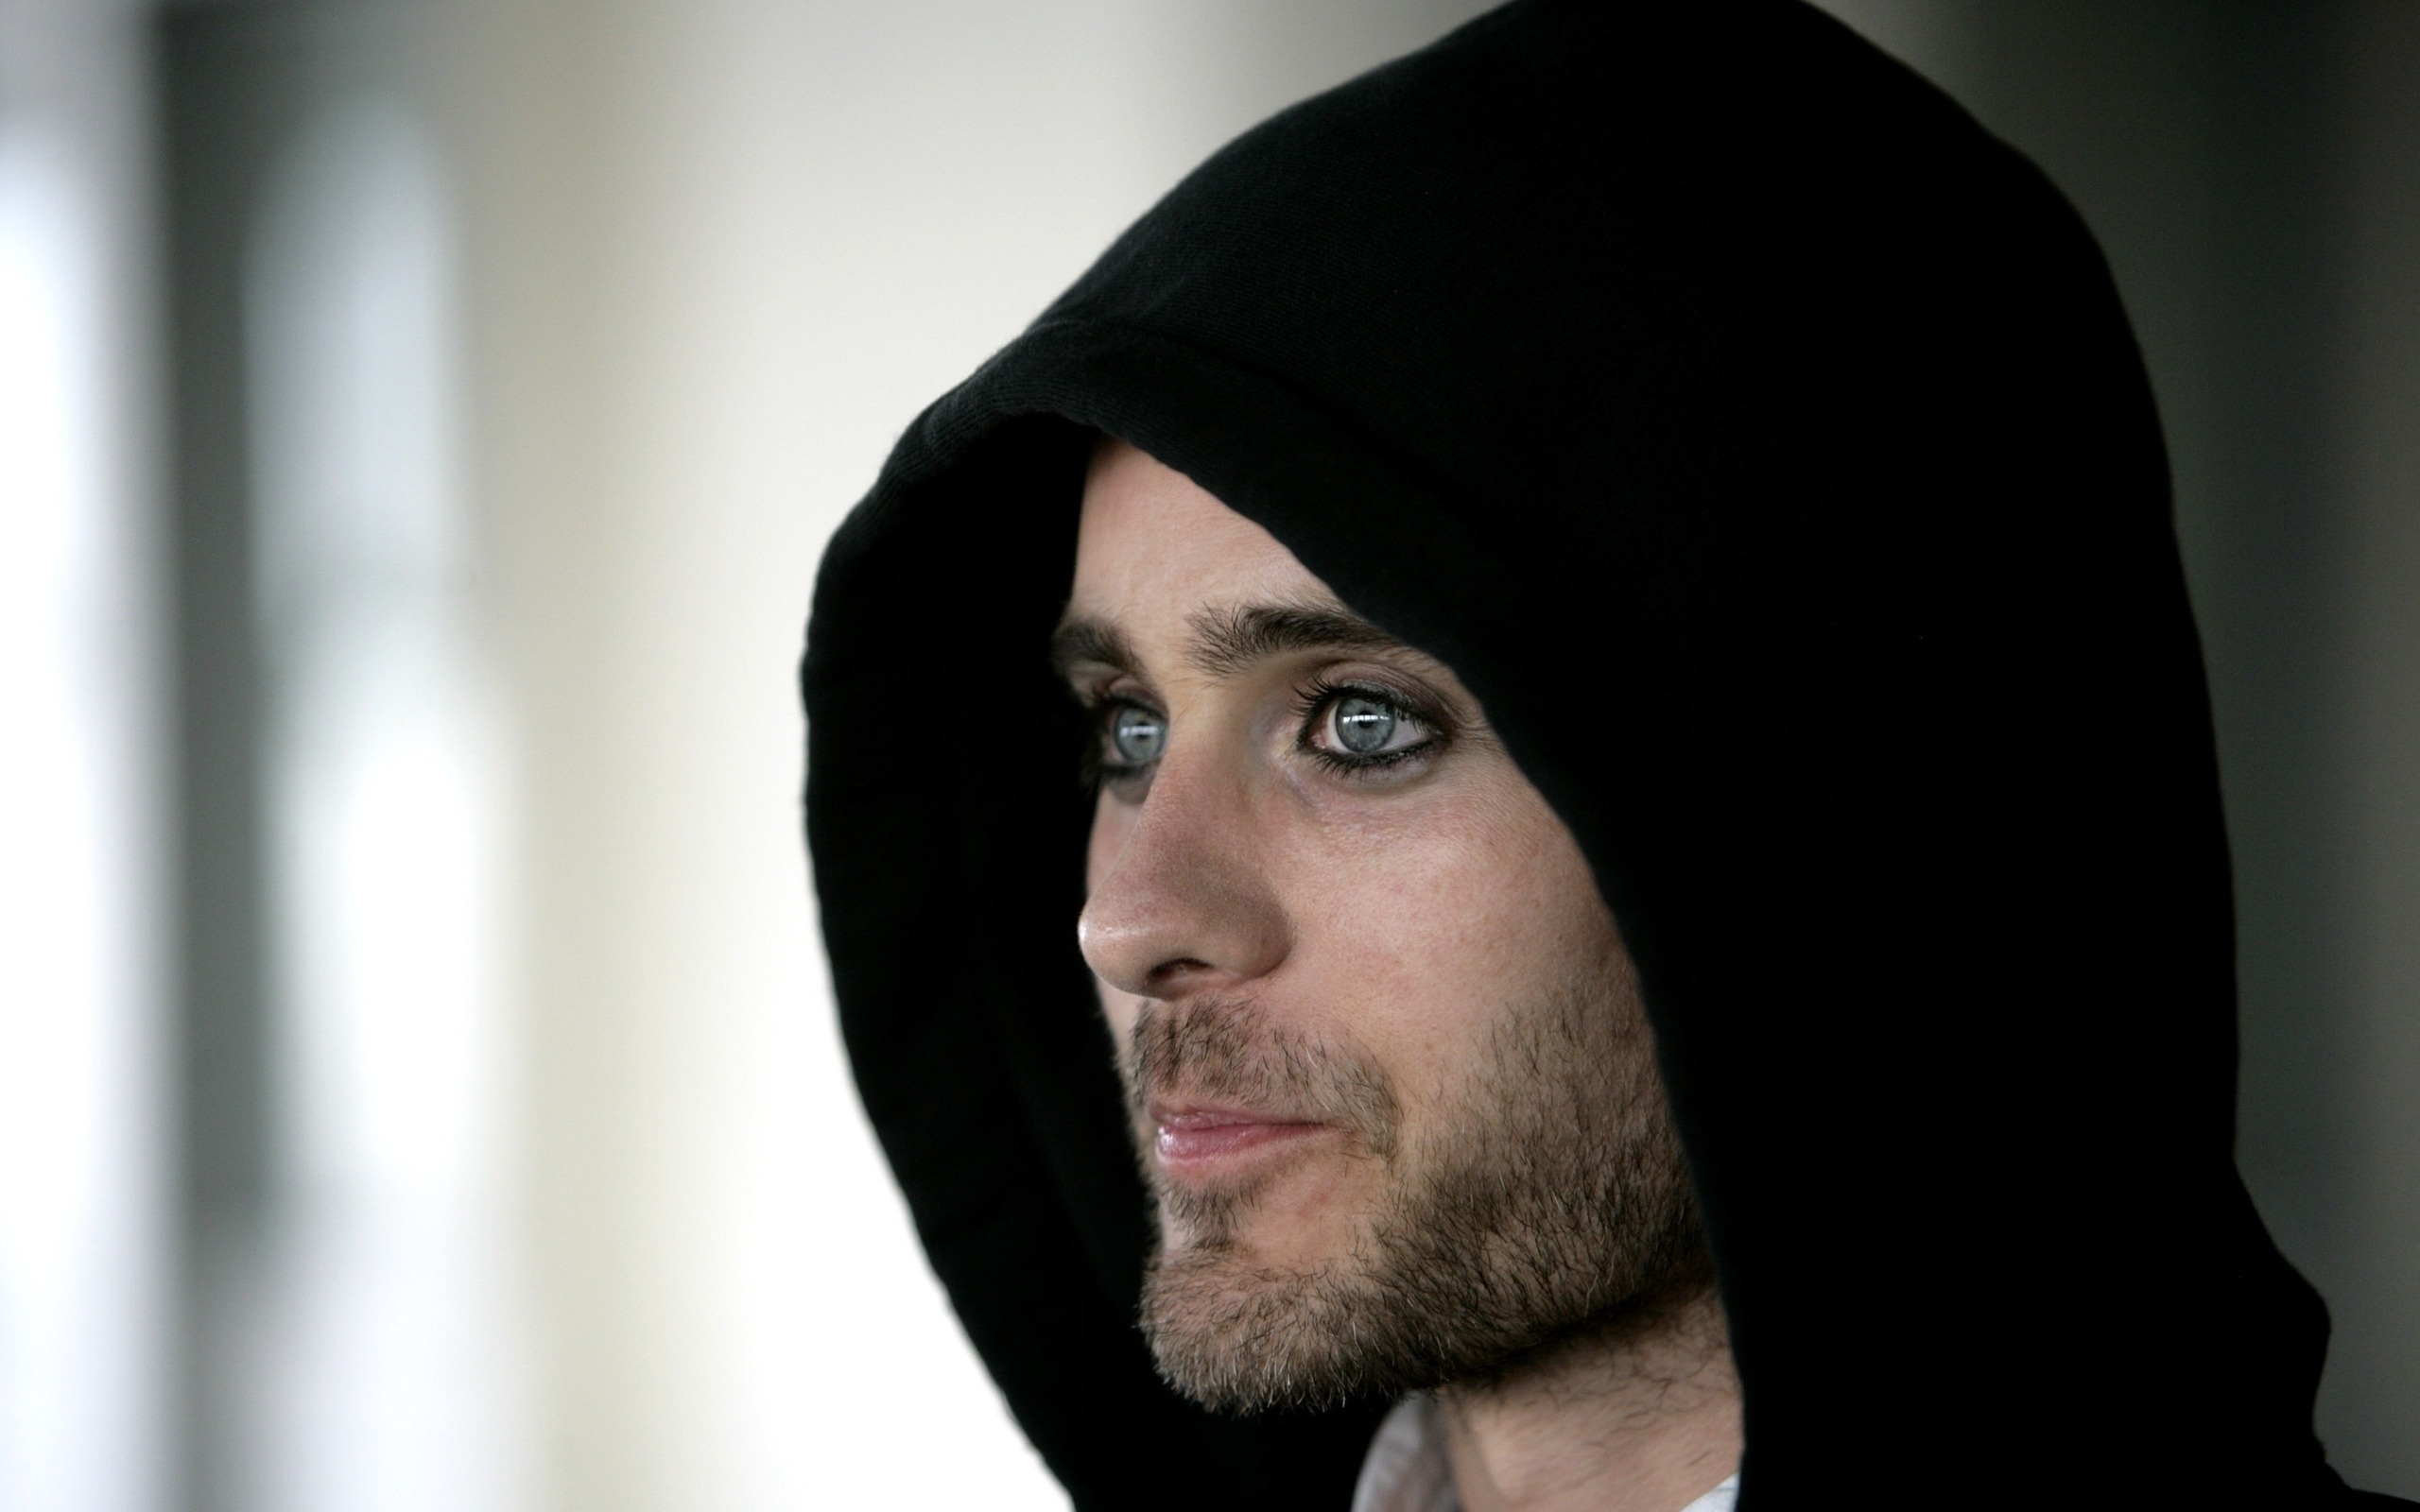 Jared leto images jared leto hd wallpaper and background photos - Jared Leto Wallpaper Background 50868